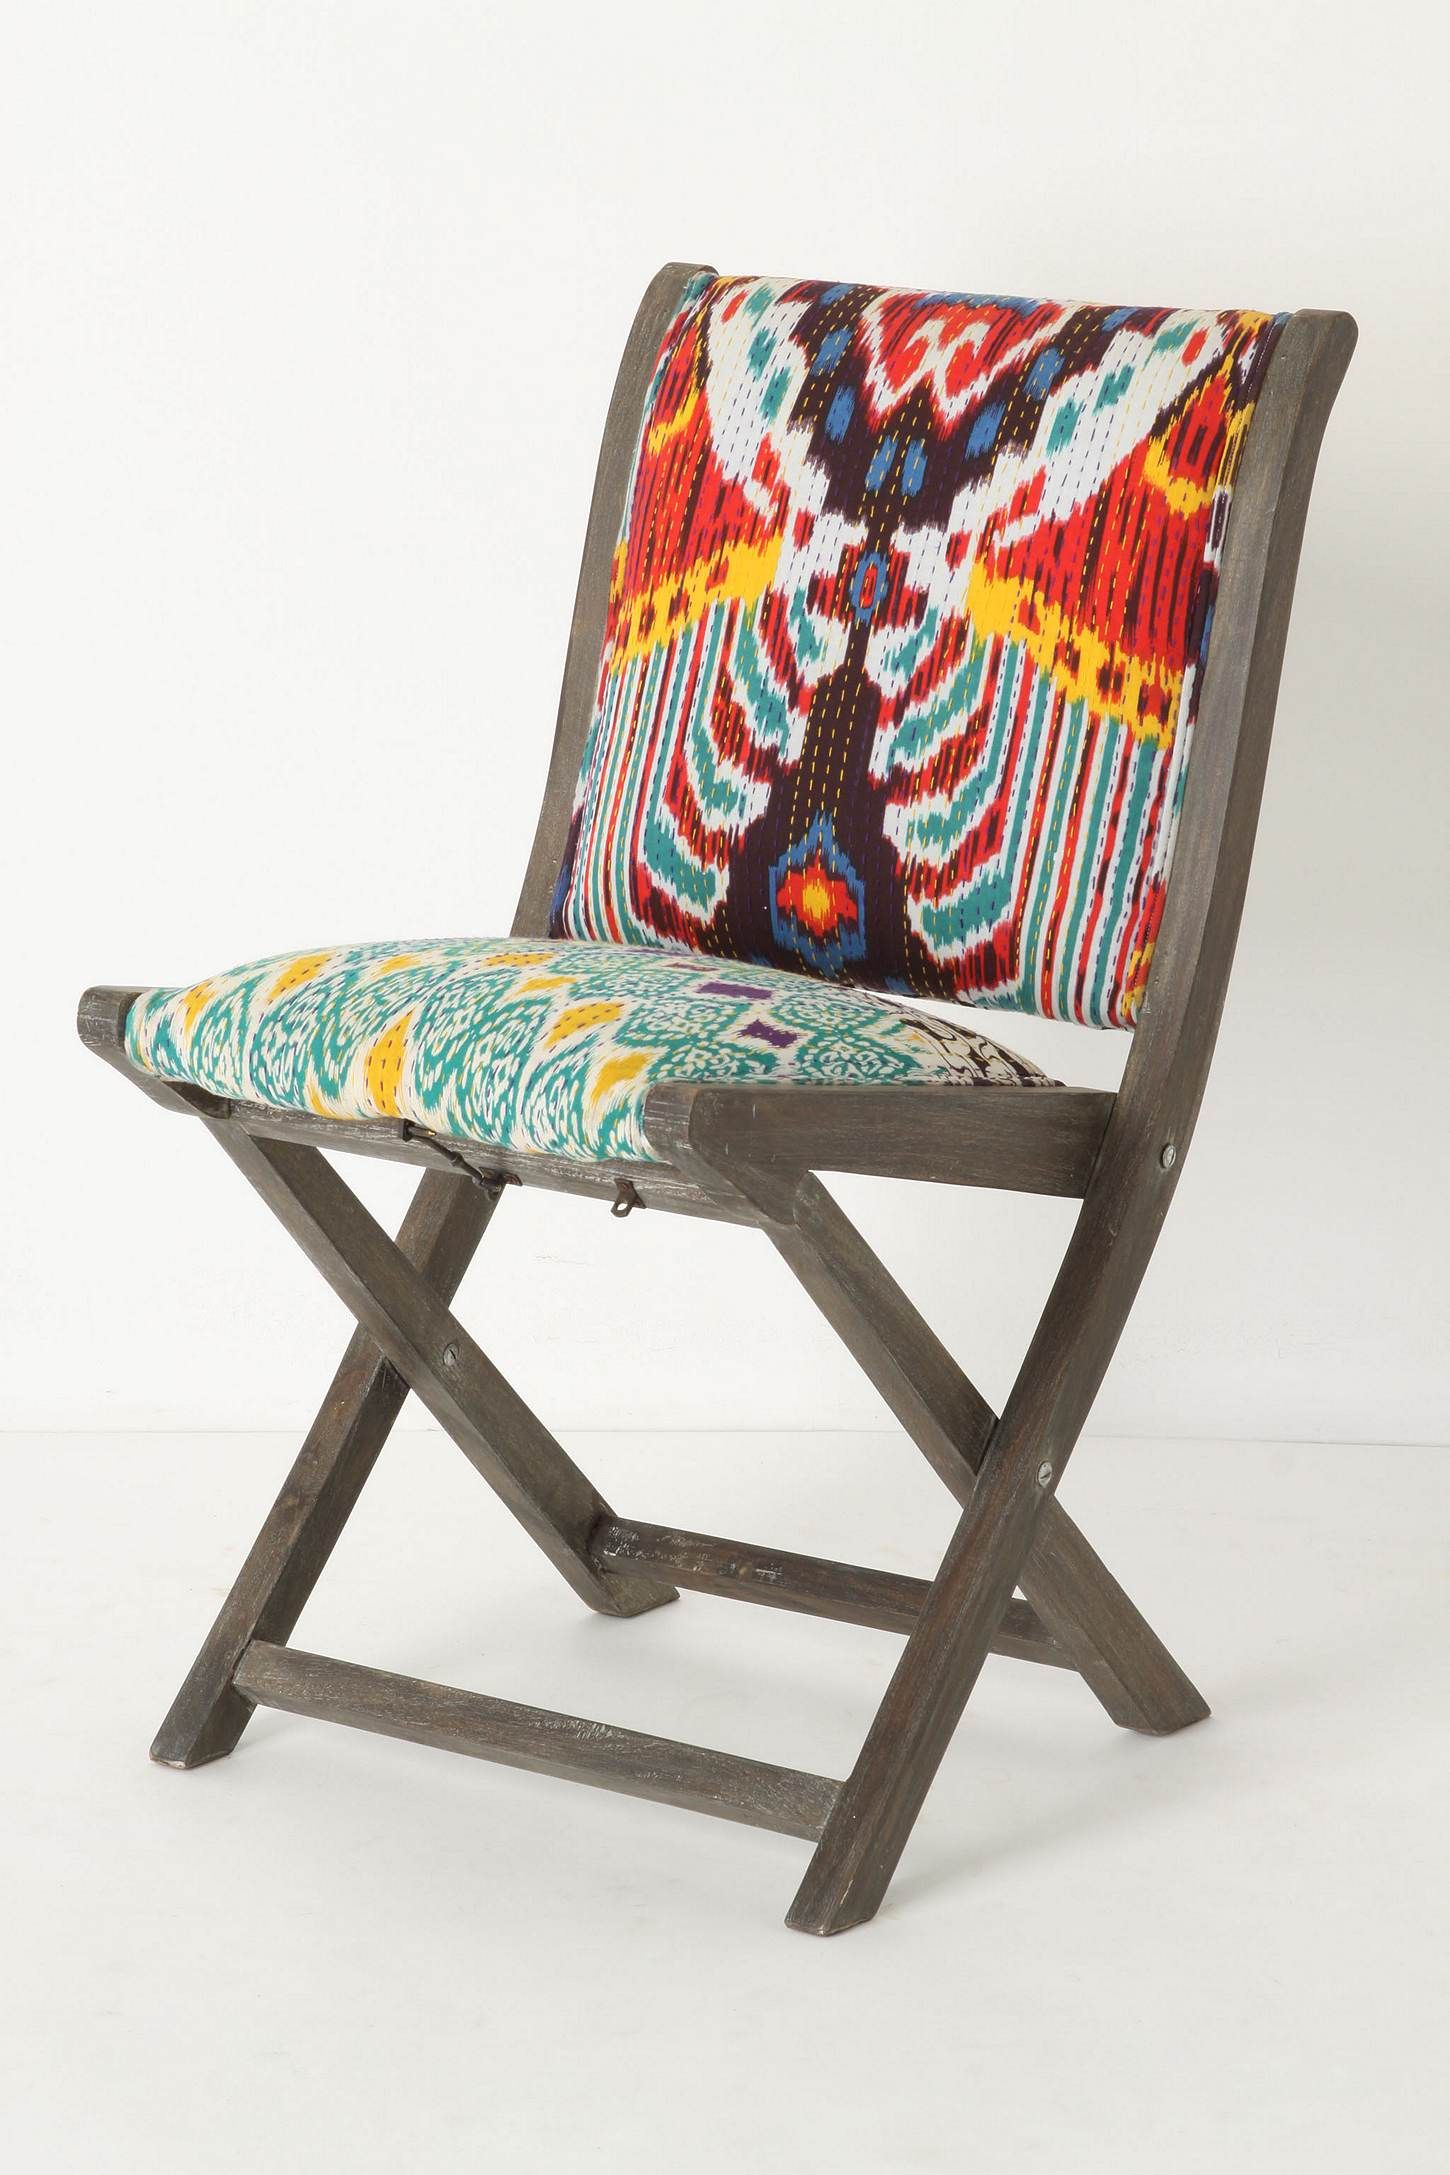 A beautiful folding chair  im in love  of course  its fromStudio Days Easel   Folding chairs  Ikat and Vintage wood. Pantone Folding Chairs For Sale. Home Design Ideas